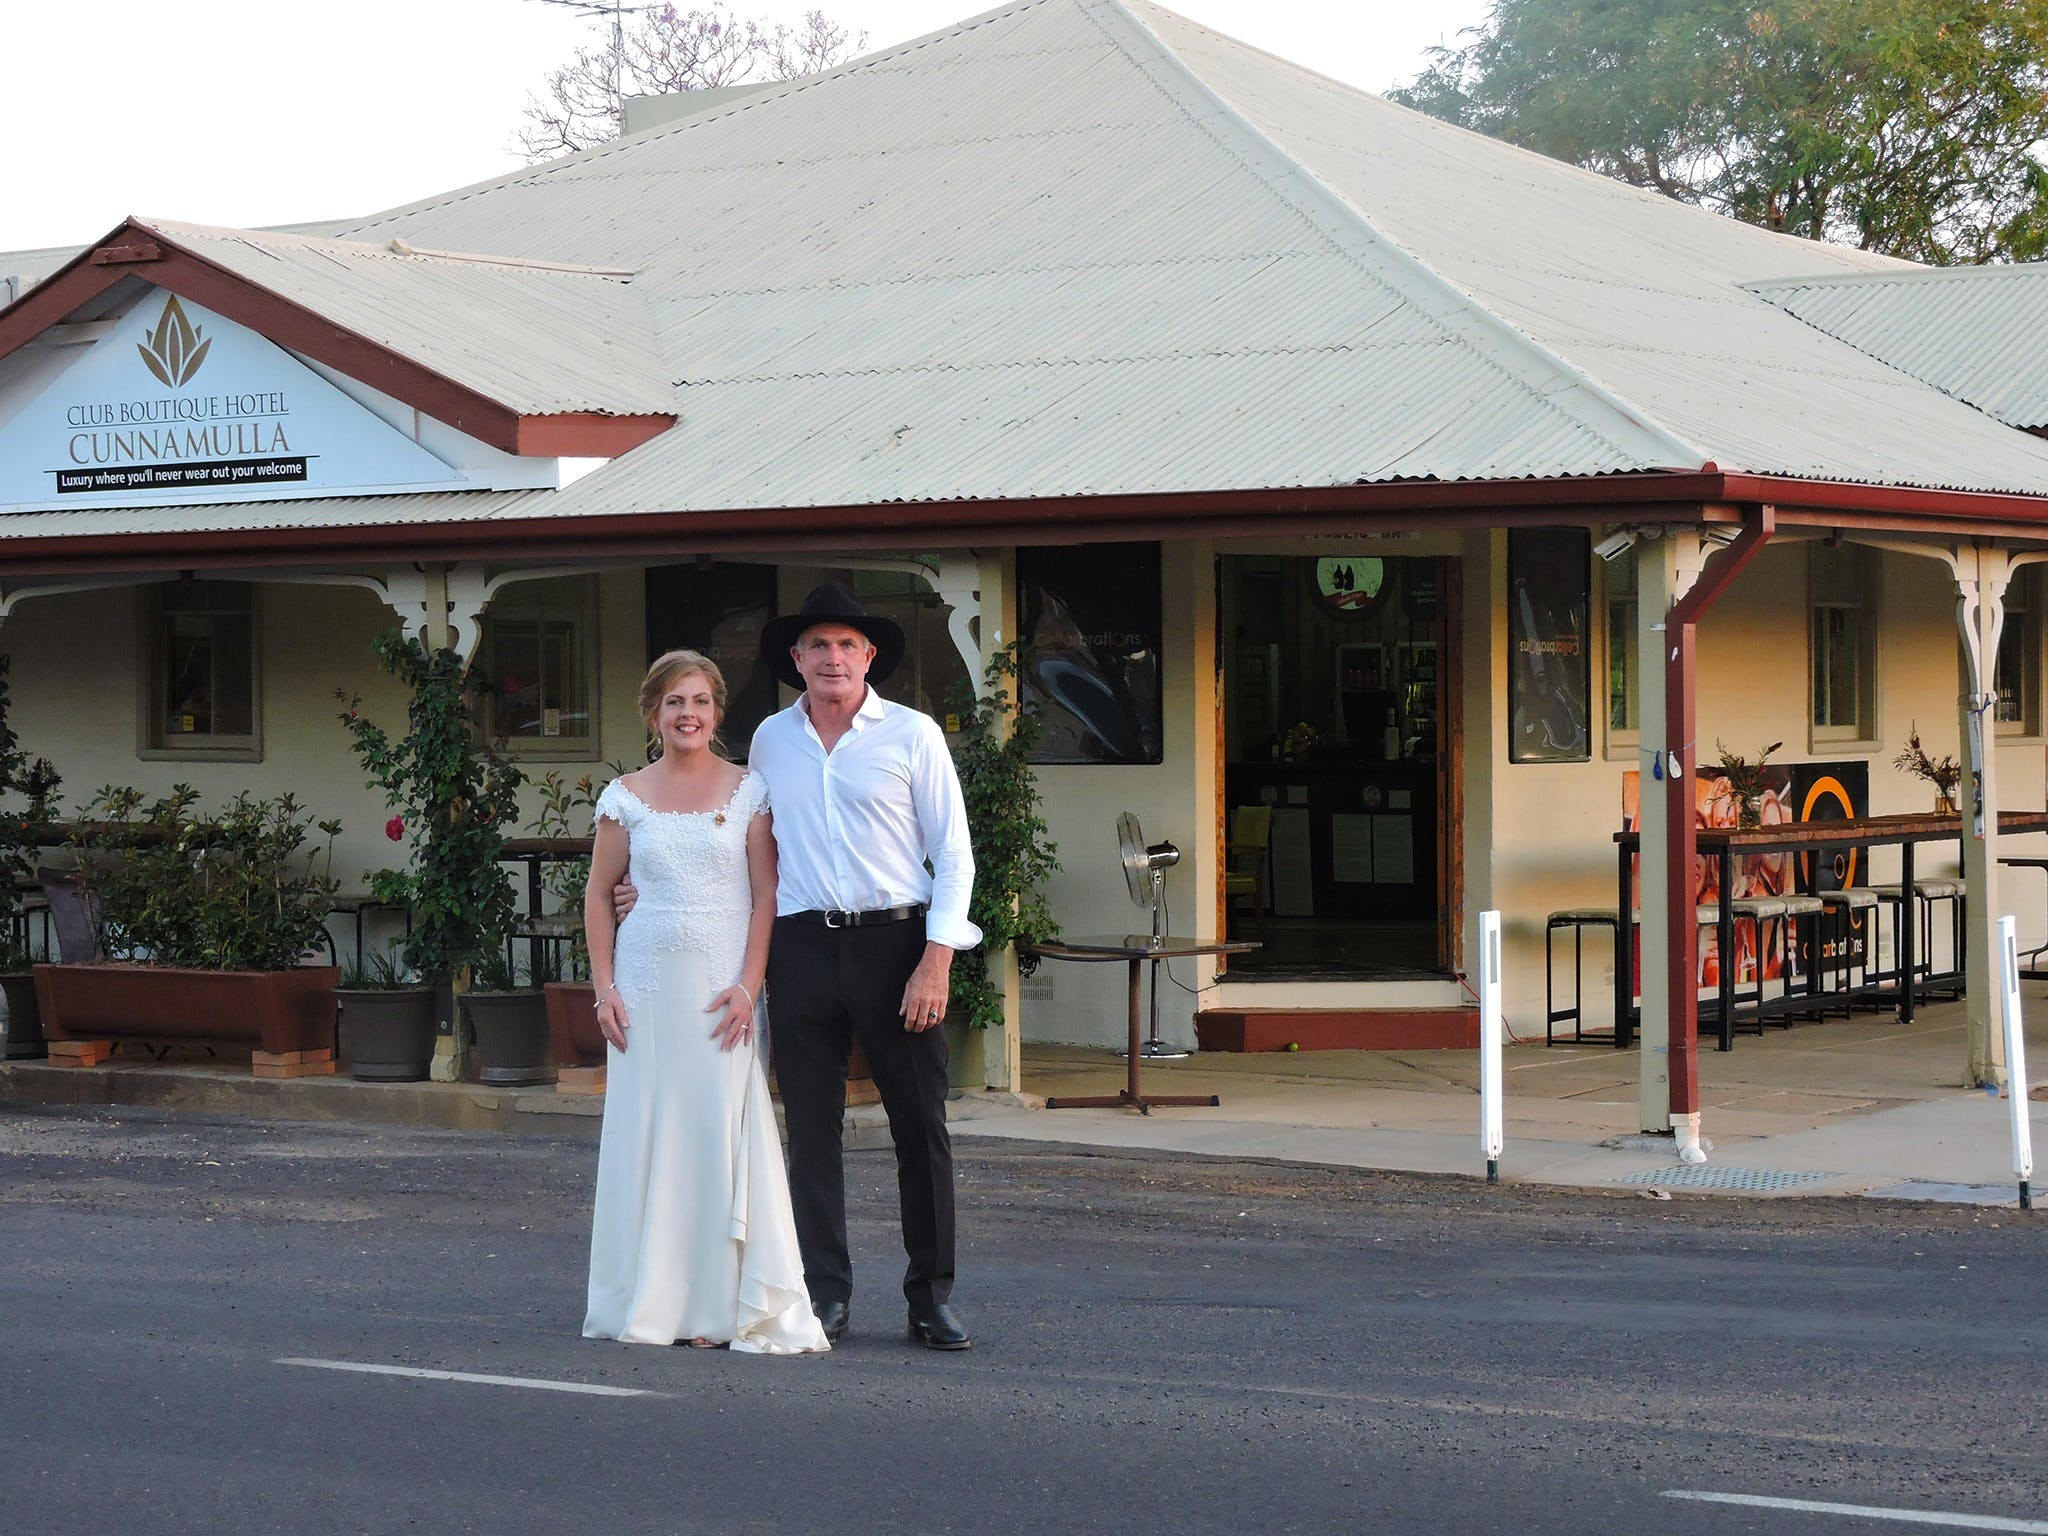 Club Boutique Hotel Cunnamulla - Accommodation Port Macquarie